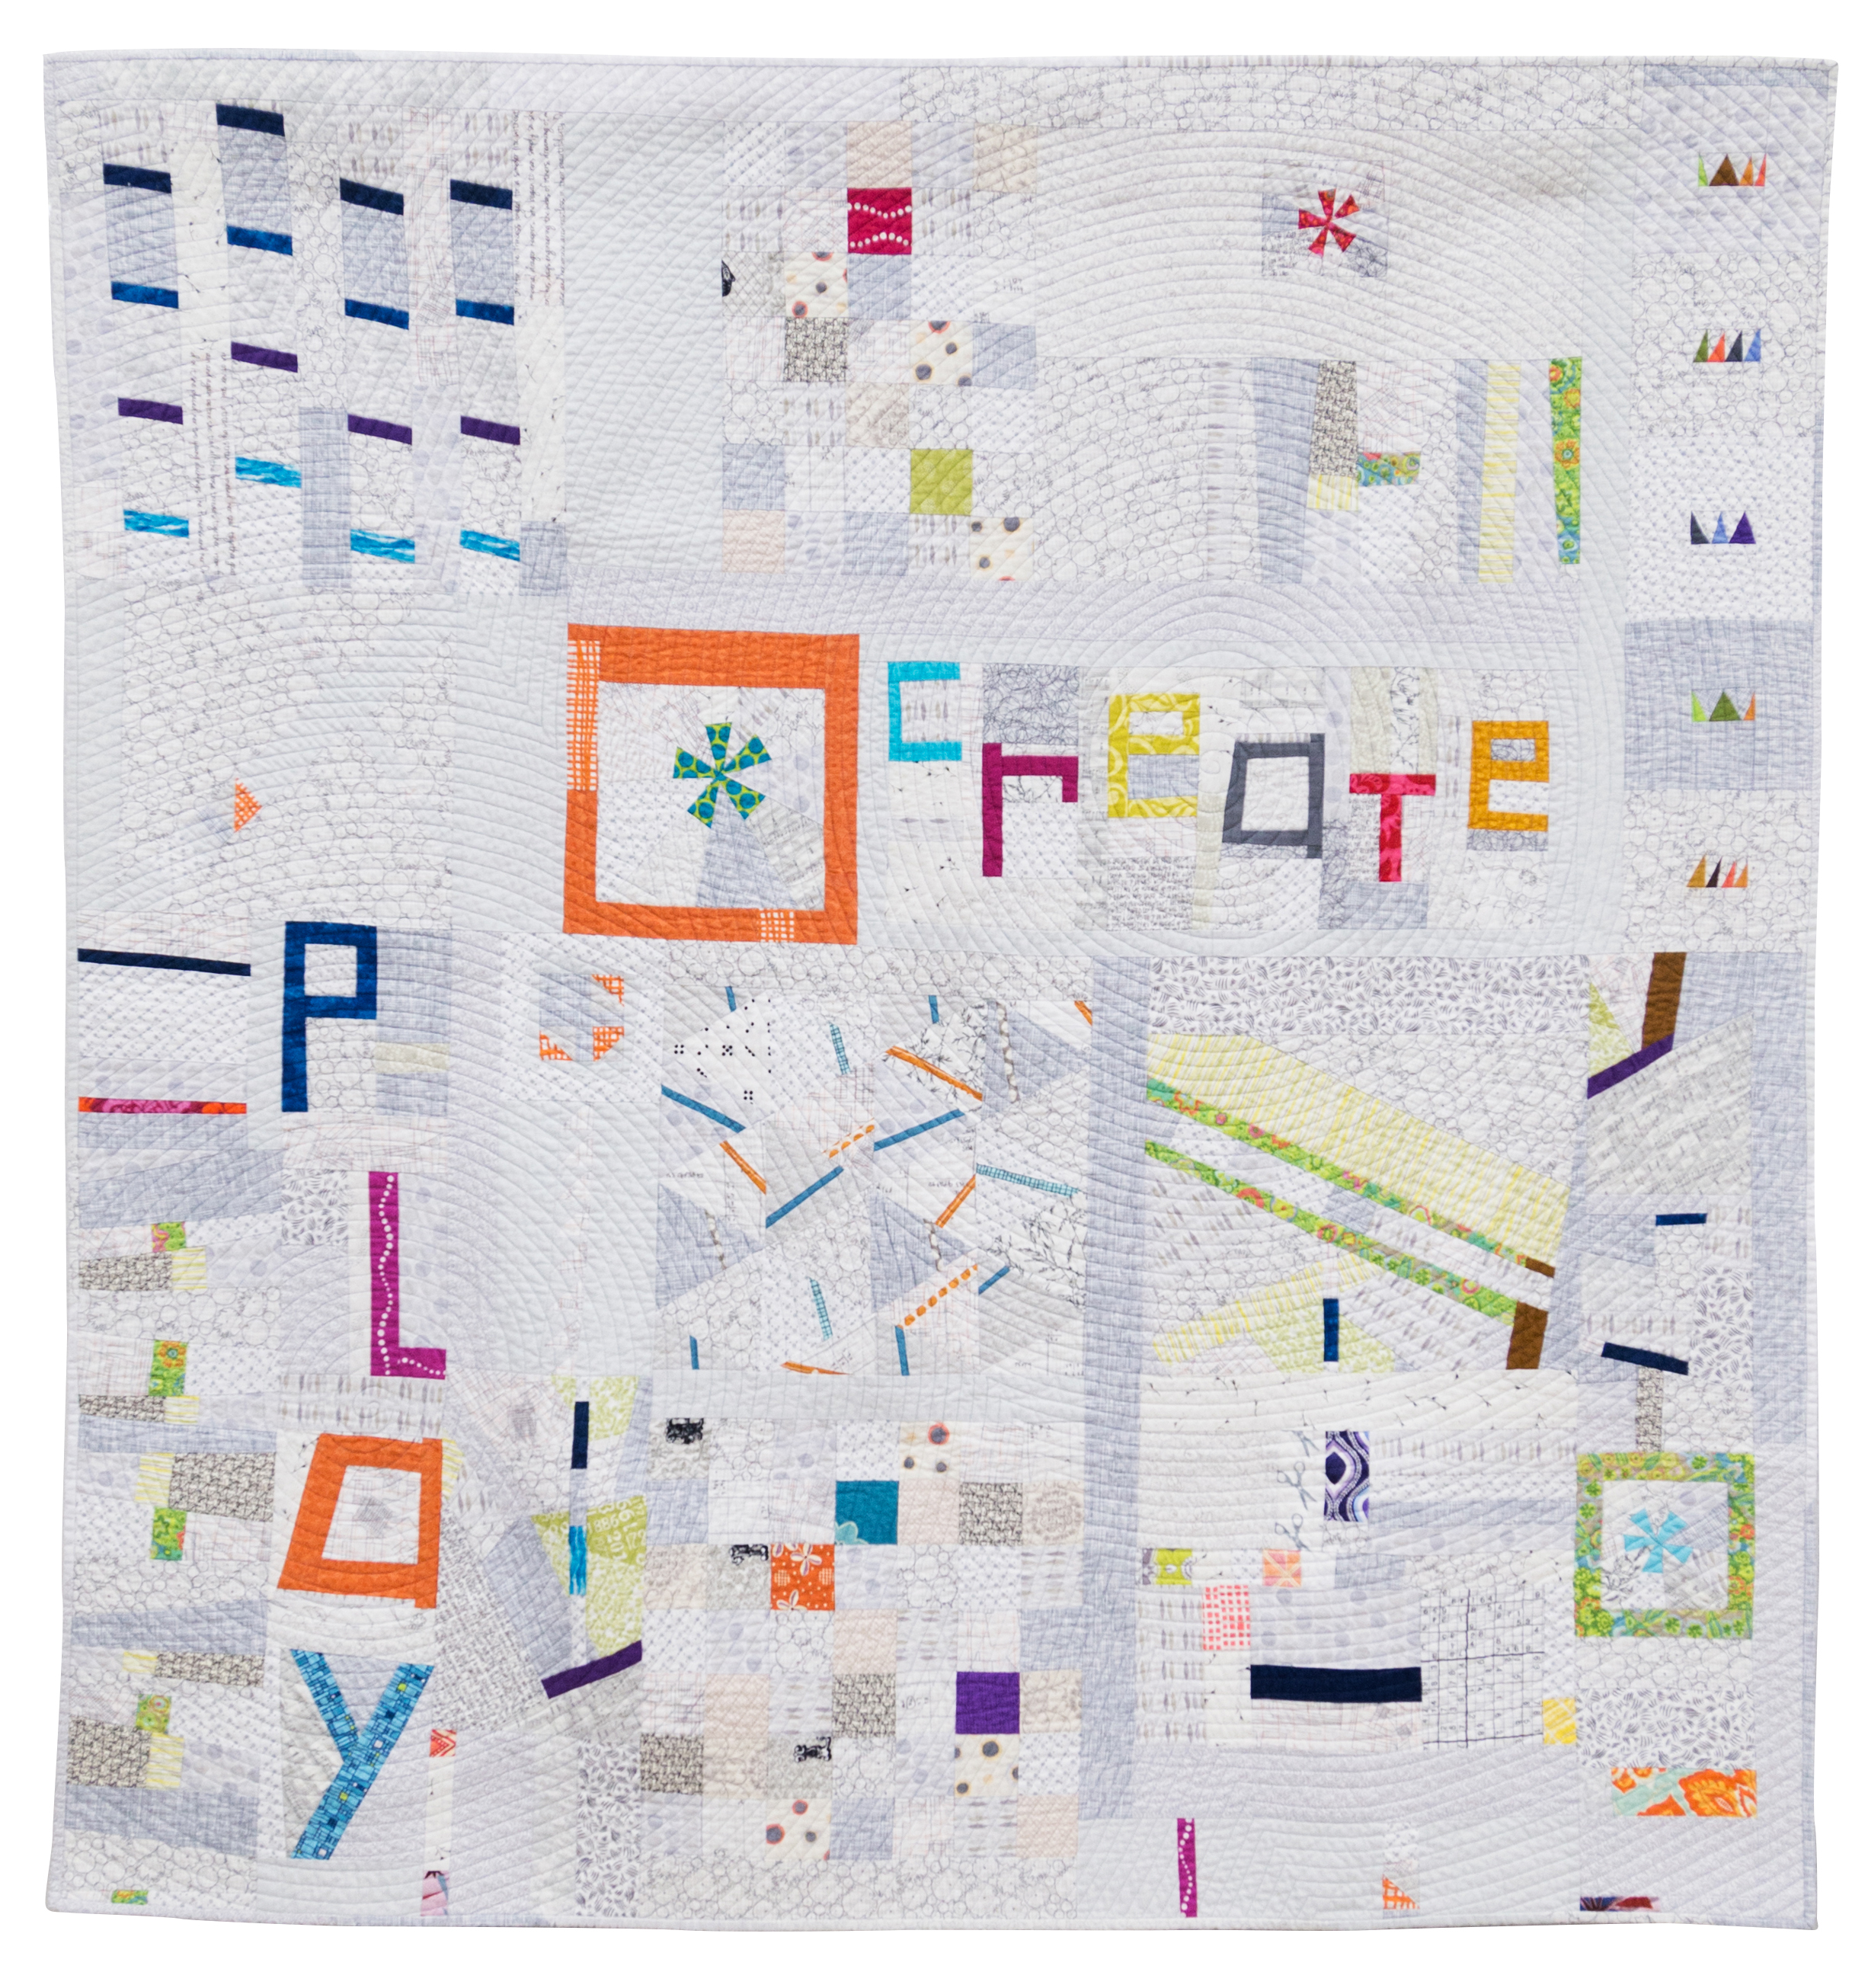 """1st Place:   Playing with Little Bits  53"""" x 55"""" By Participants of Mid-Atlantic MOD 2014 Pieced by: Rose Daley, Anna Levengood, Jill Stafford, Jessica Skultety, Jessica Levitt, Robin Tillsworth, Rachel Singh, and Elizabeth Timmons Quilted by: Rose Daley Columbia, Maryland"""